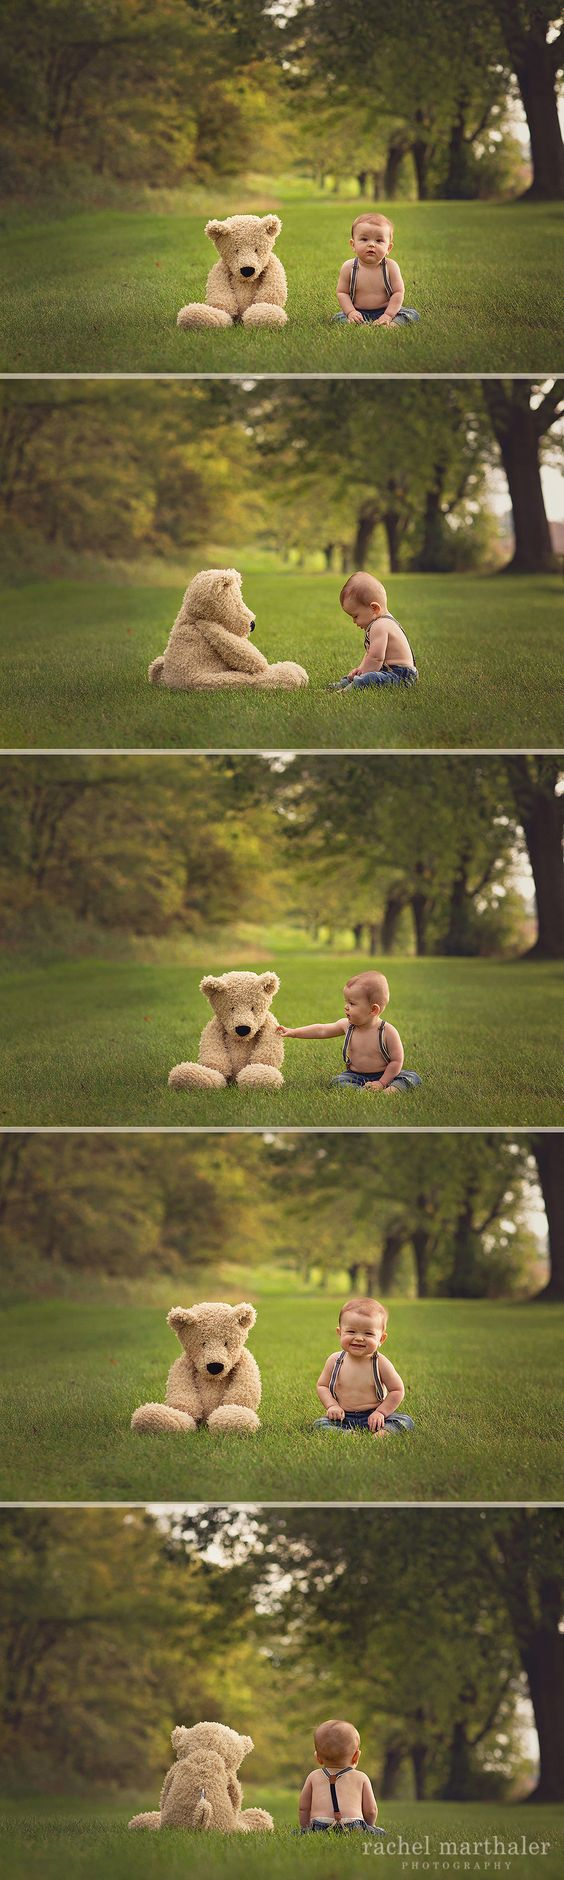 Baby Teddy Bear Photo, 8 month photo baby boy, Teddy bear, Twin Cities Photographer, Rachel Marthaler Photography: